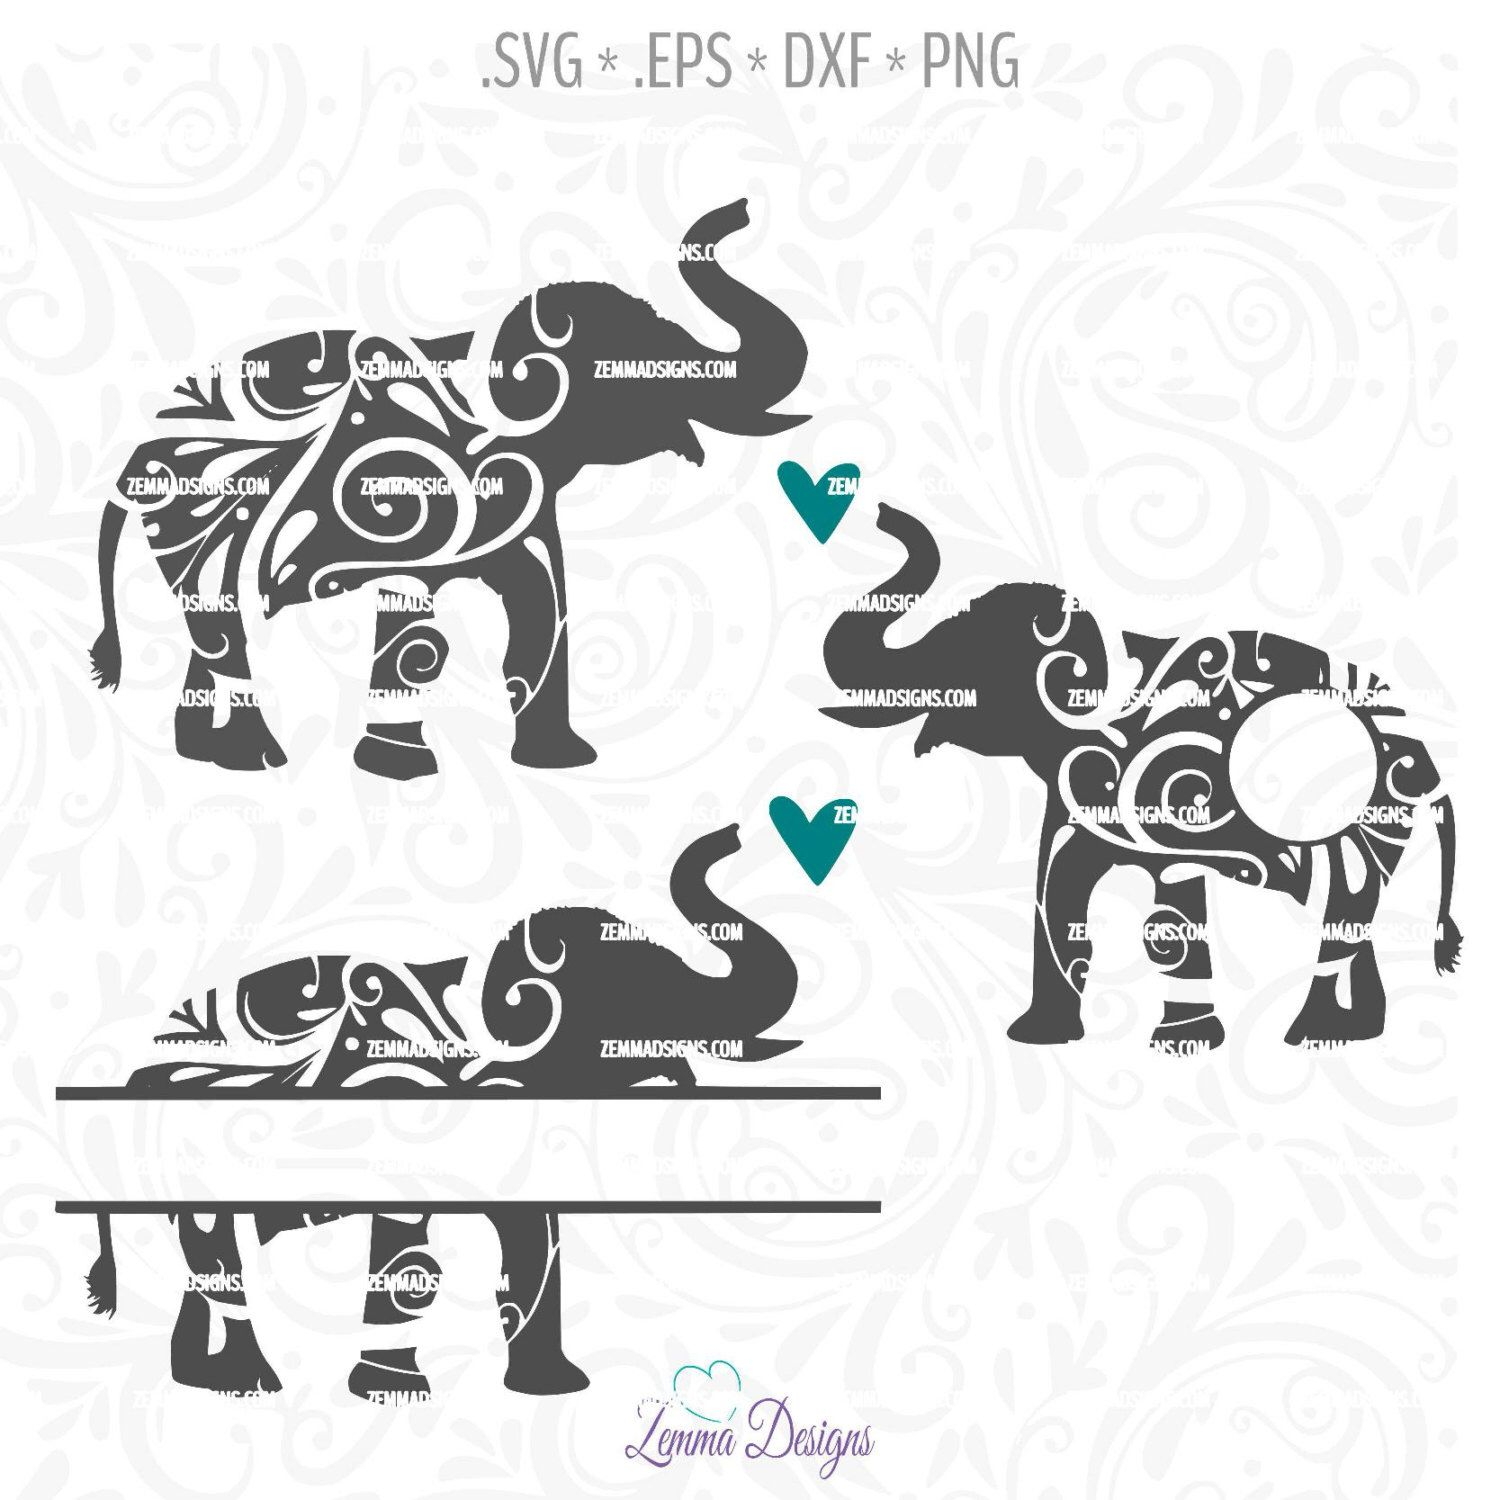 Dxf Big Time Svg Clipart Jpg Cut File Vector Art Png Svg Eps Baby Elephant Craft Supplies Tools Paper Party Kids